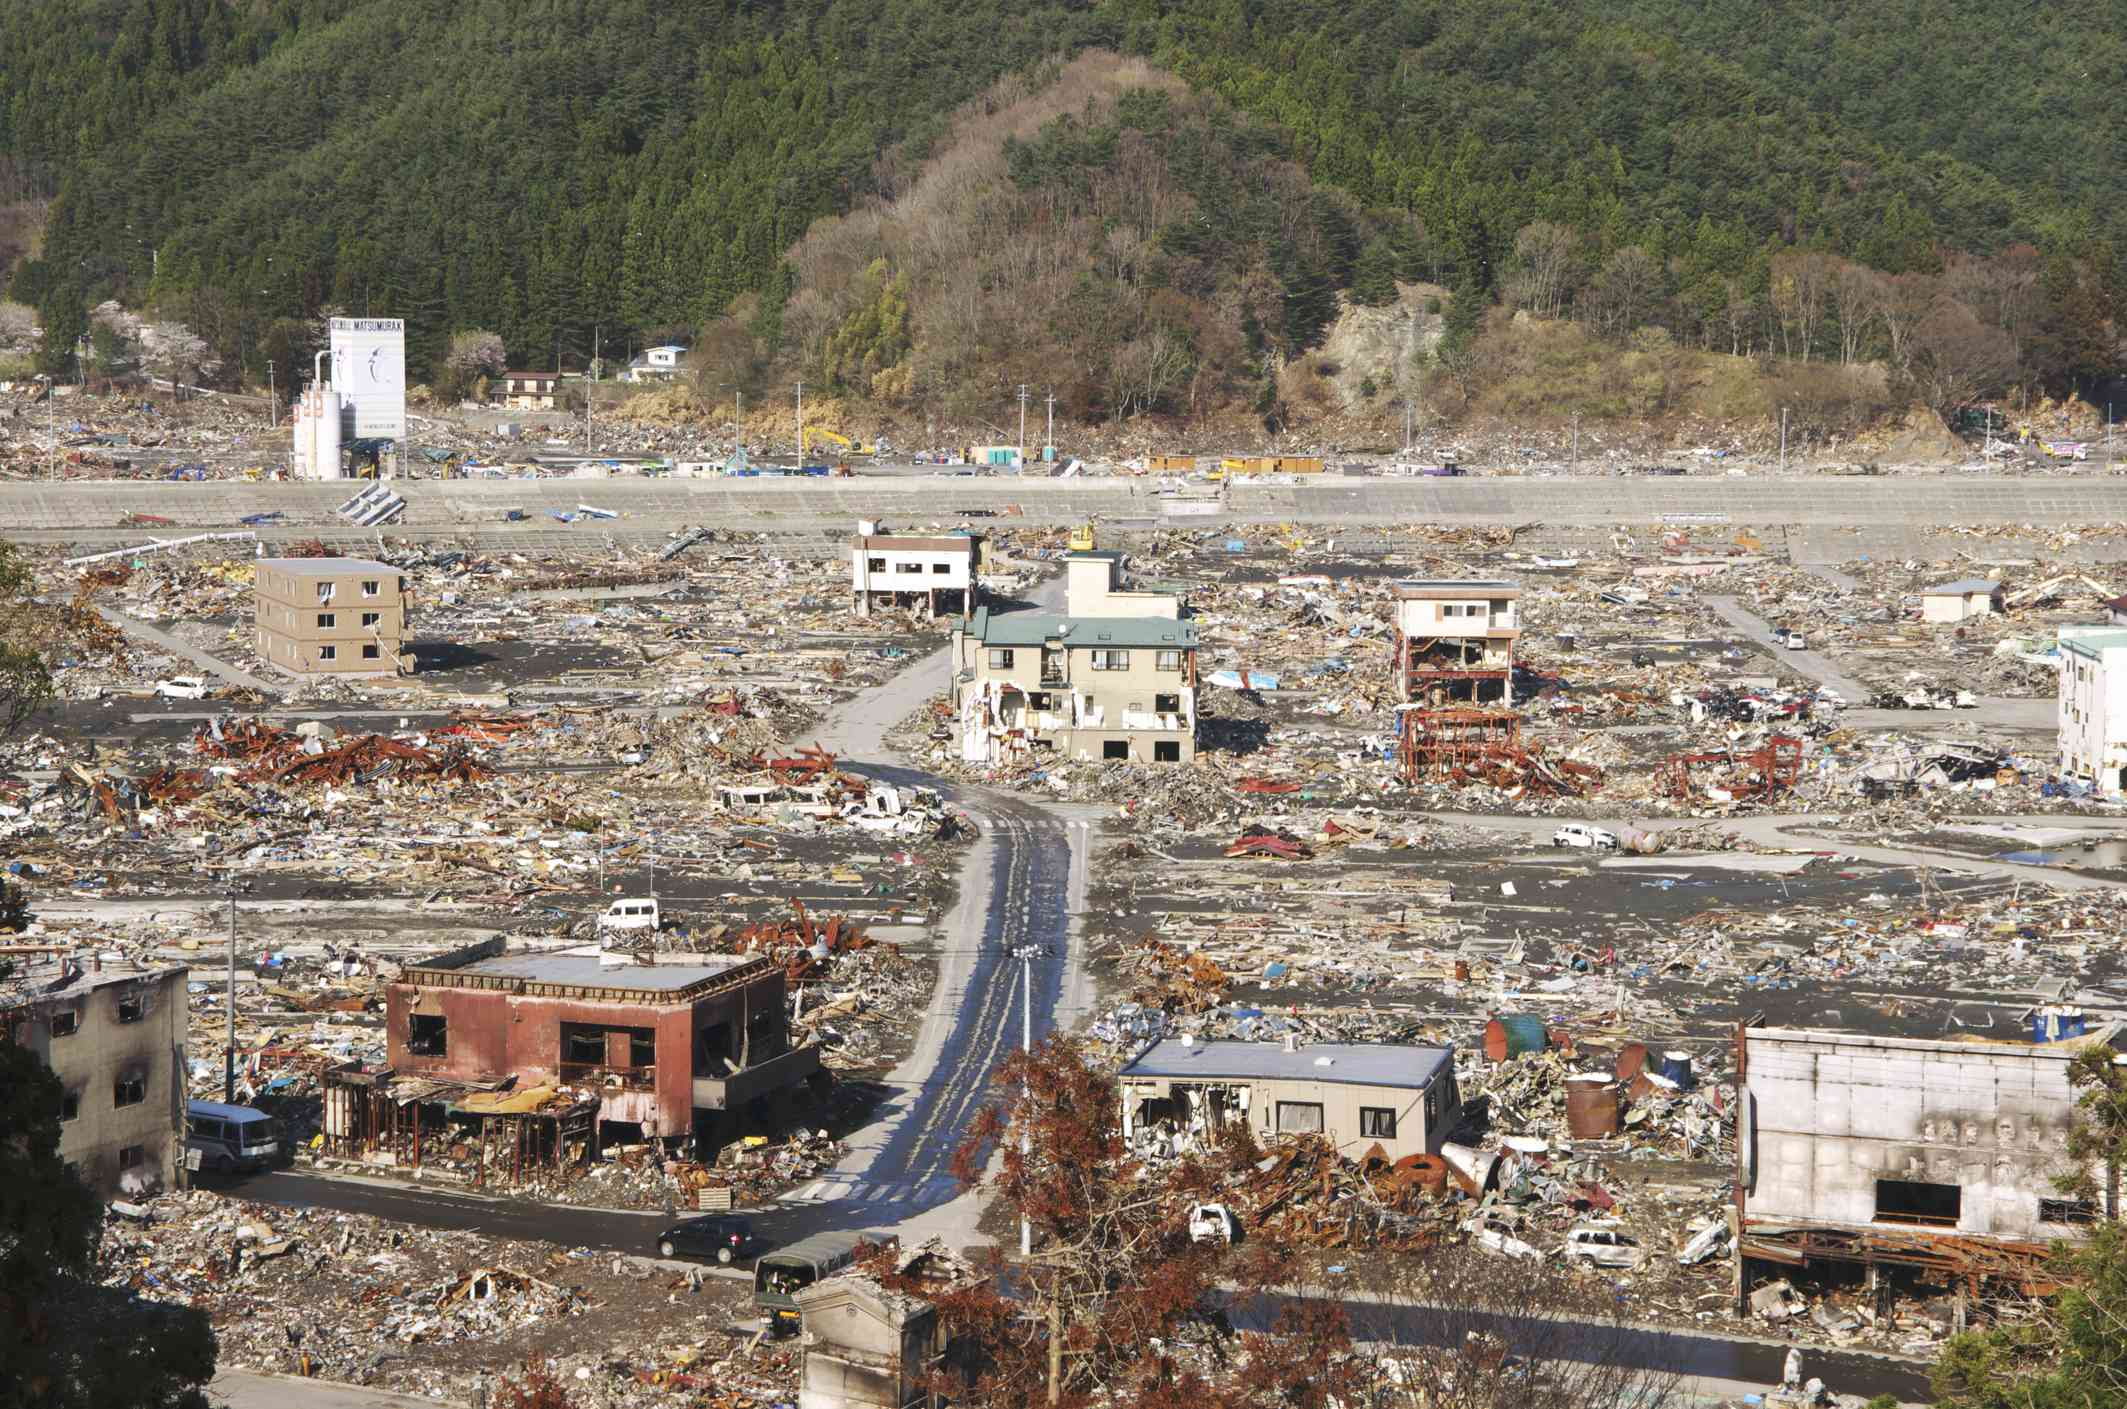 Town destroyed by the tsunami in Japan